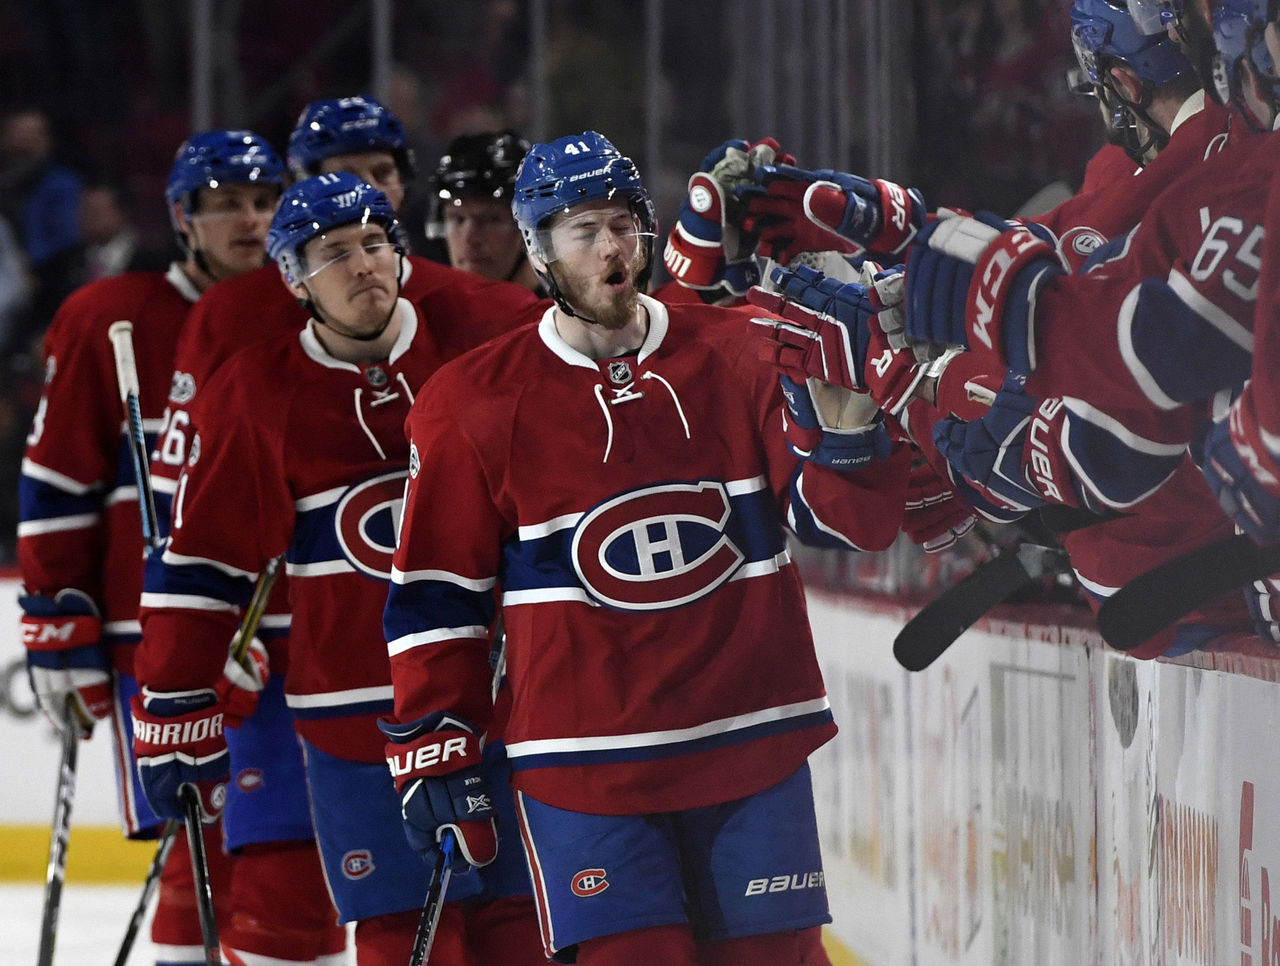 Cropped 2017 03 15t024609z 1737937920 nocid rtrmadp 3 nhl chicago blackhawks at montreal canadiens